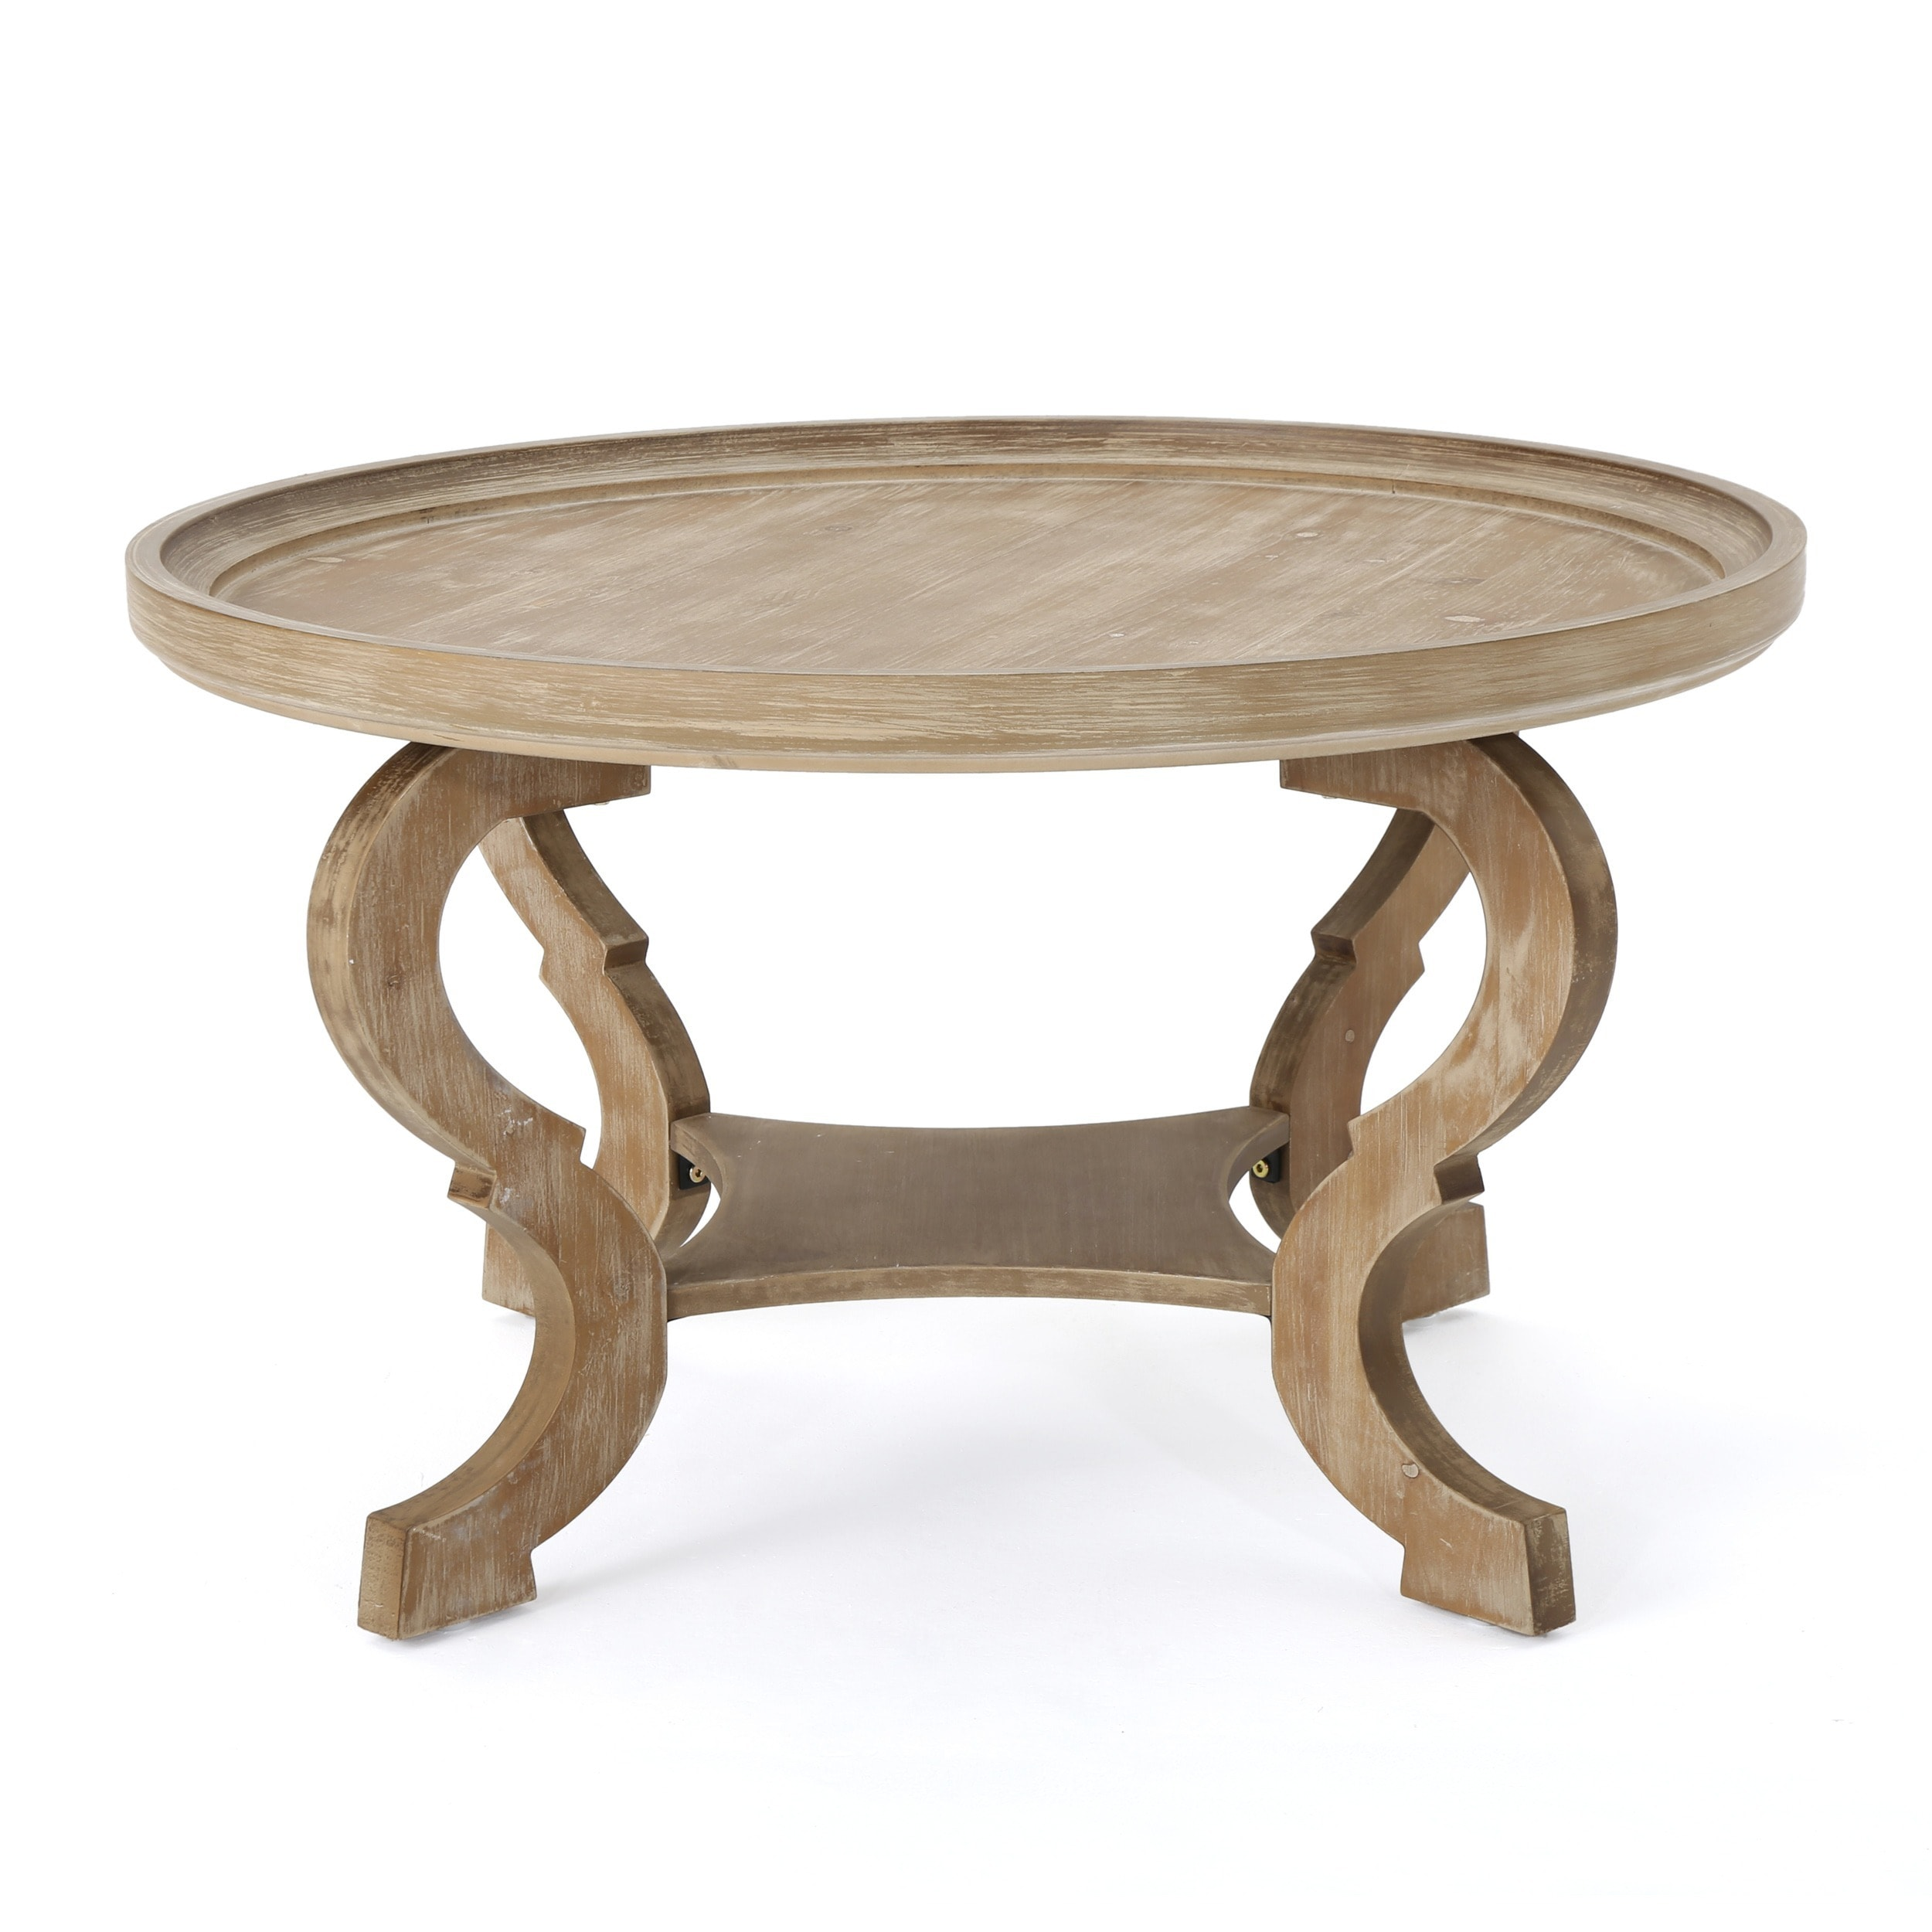 Althea Round Wood Coffee Table By Christopher Knight Home On Free Shipping Today Com 18696541